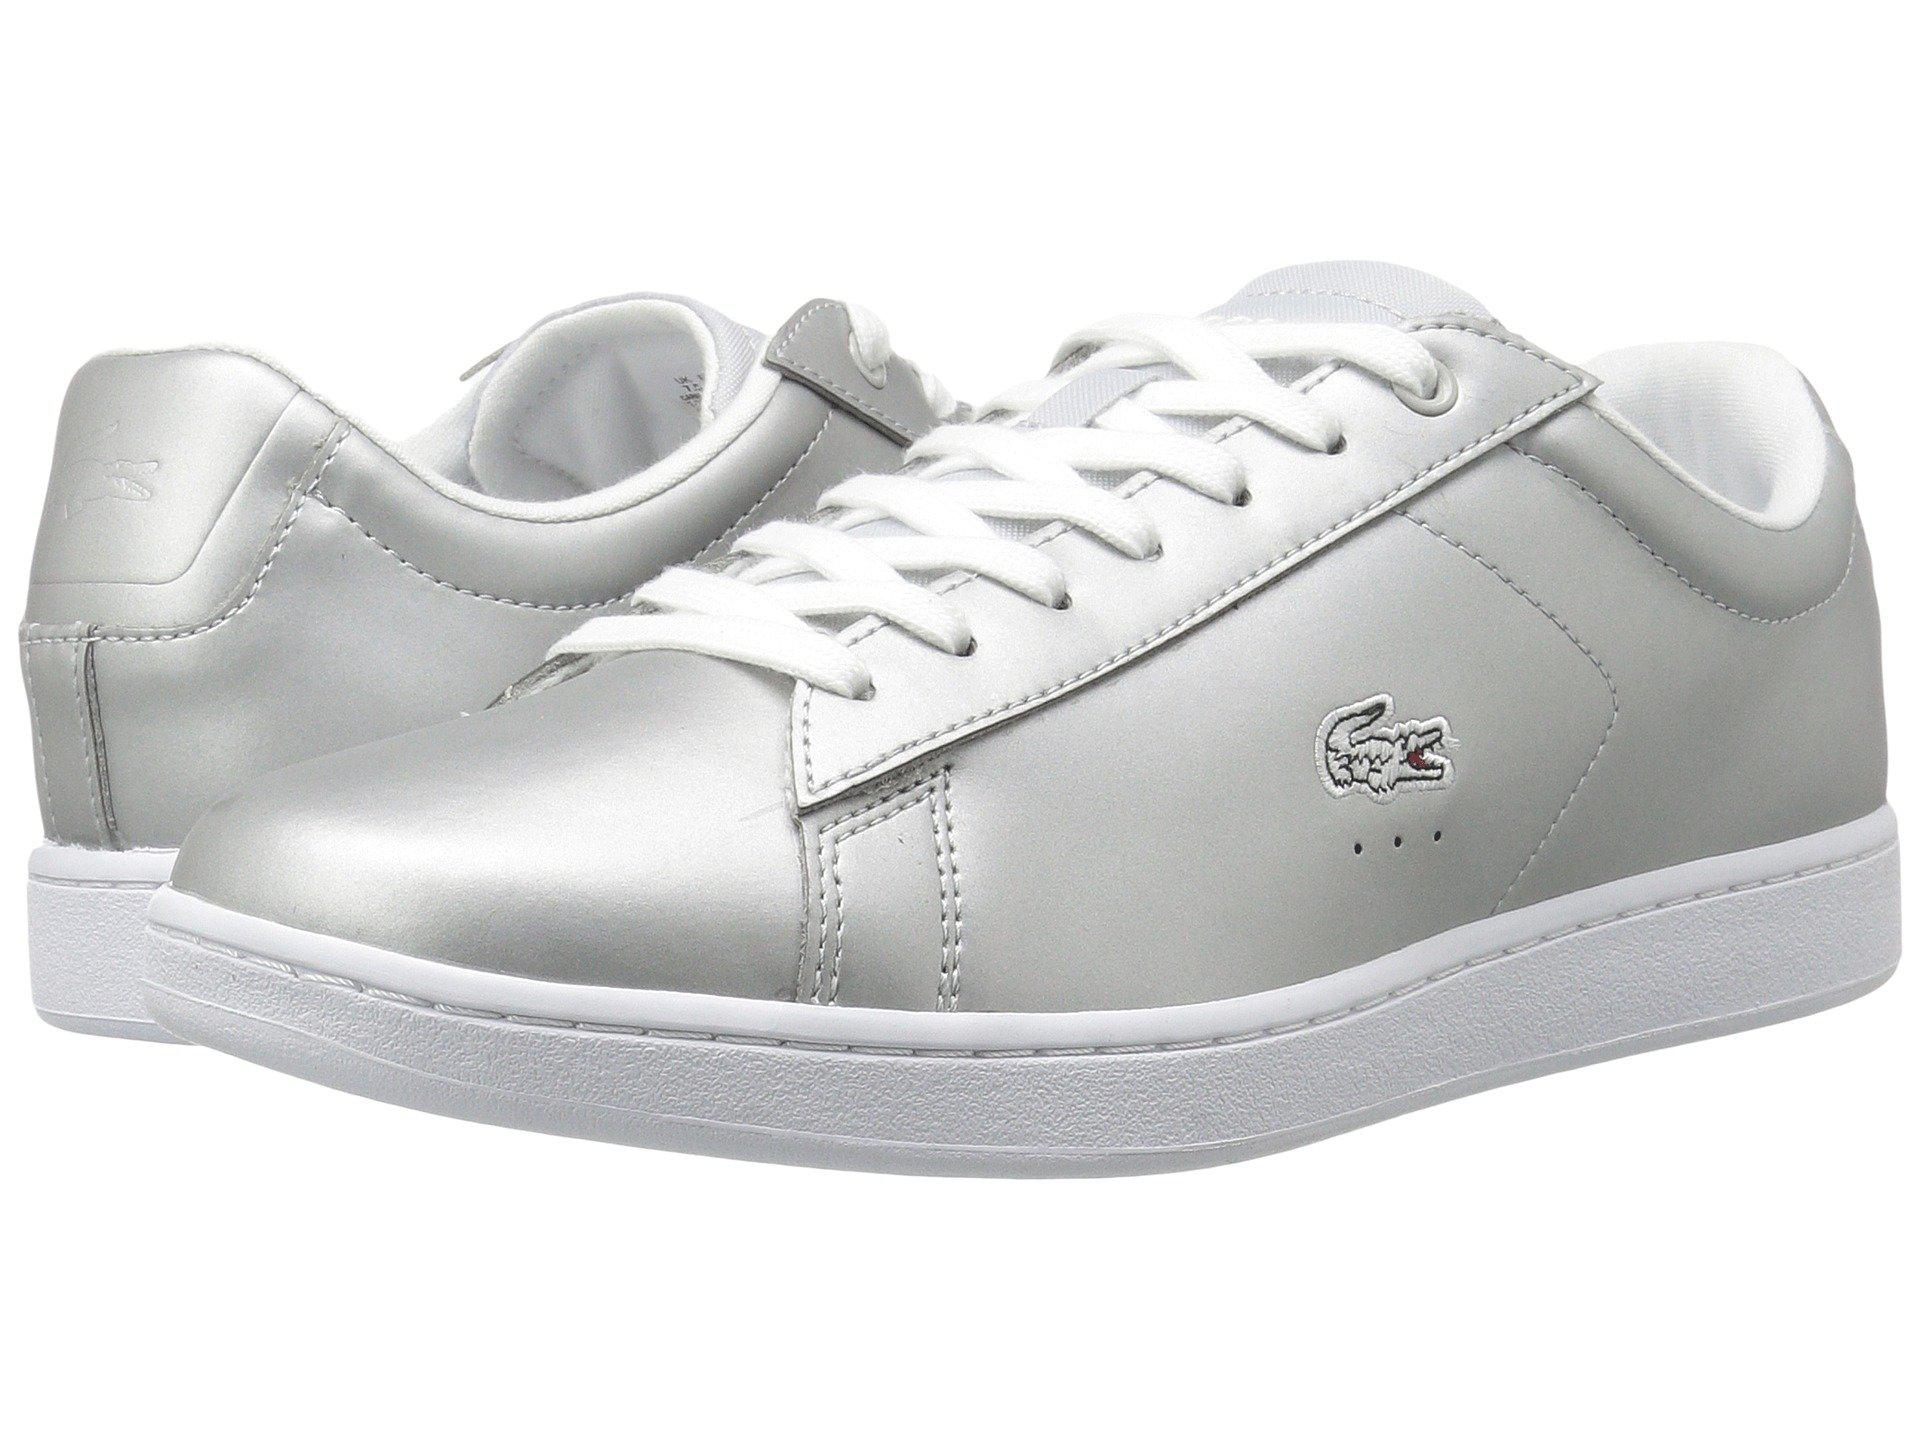 f6a4515d1f66 Lyst - Lacoste Carnaby Evo 117 3 in Gray